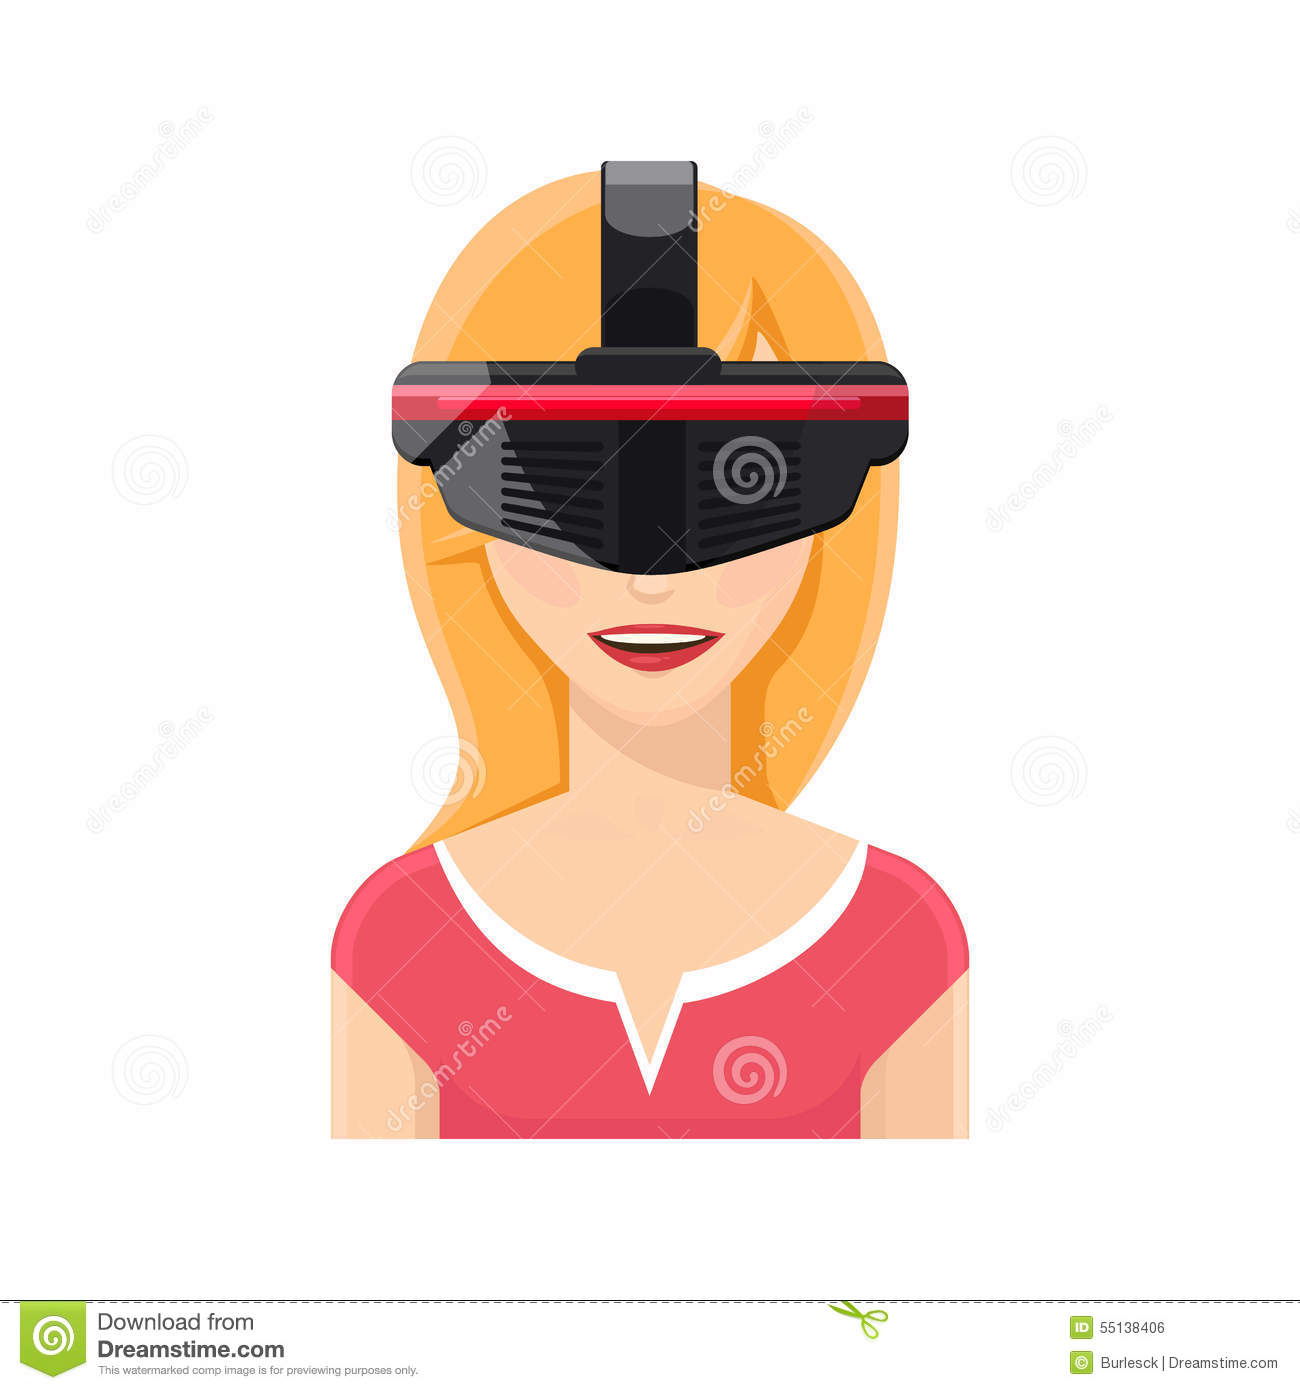 Woman Avatar In Virtual Reality Glasses Stock Vector